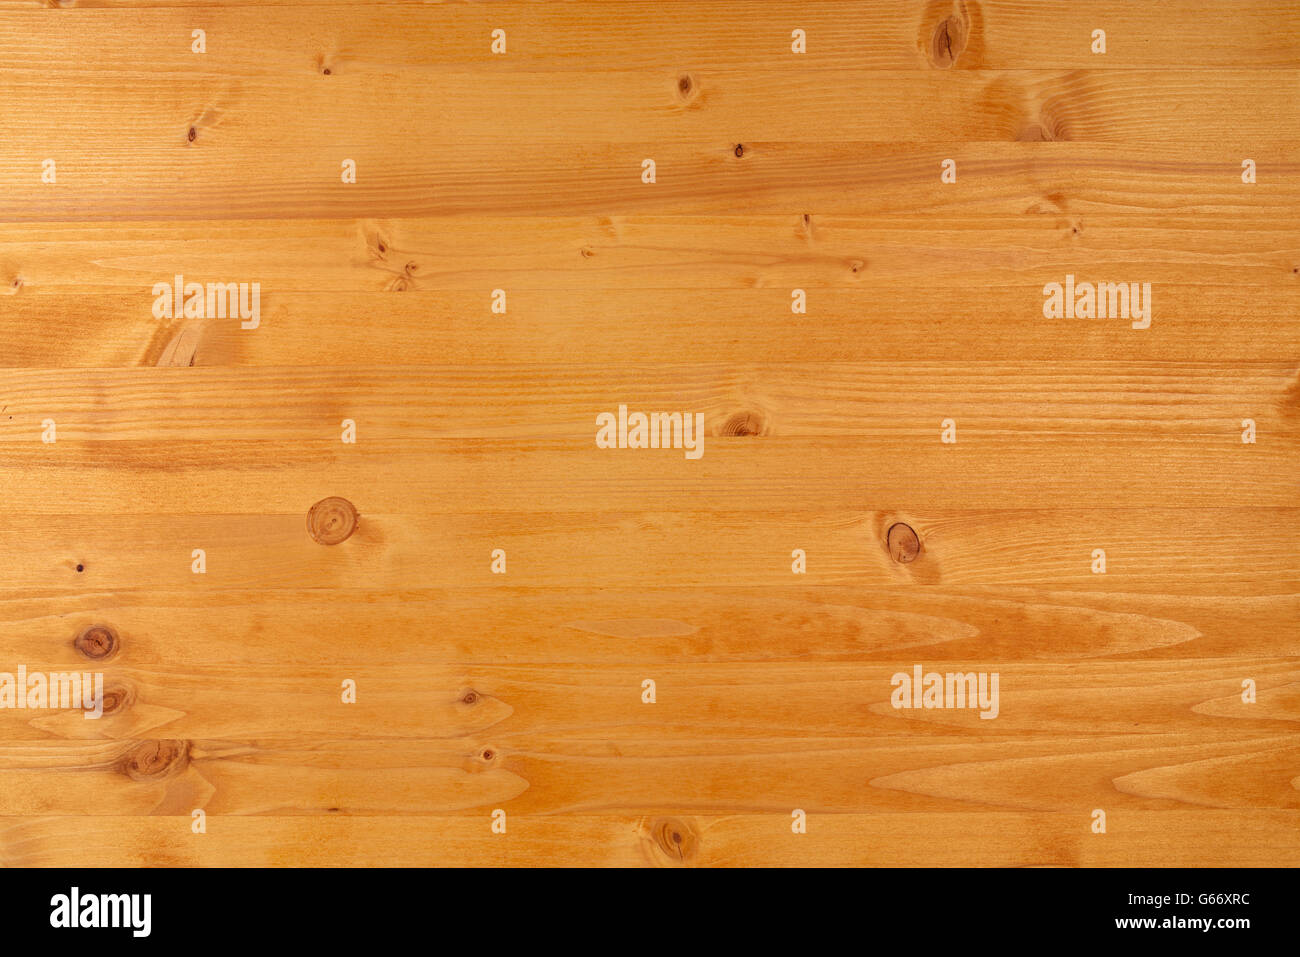 Yellow Pine Wood Plank Texture, Top View Of Wooden Board   Stock Image